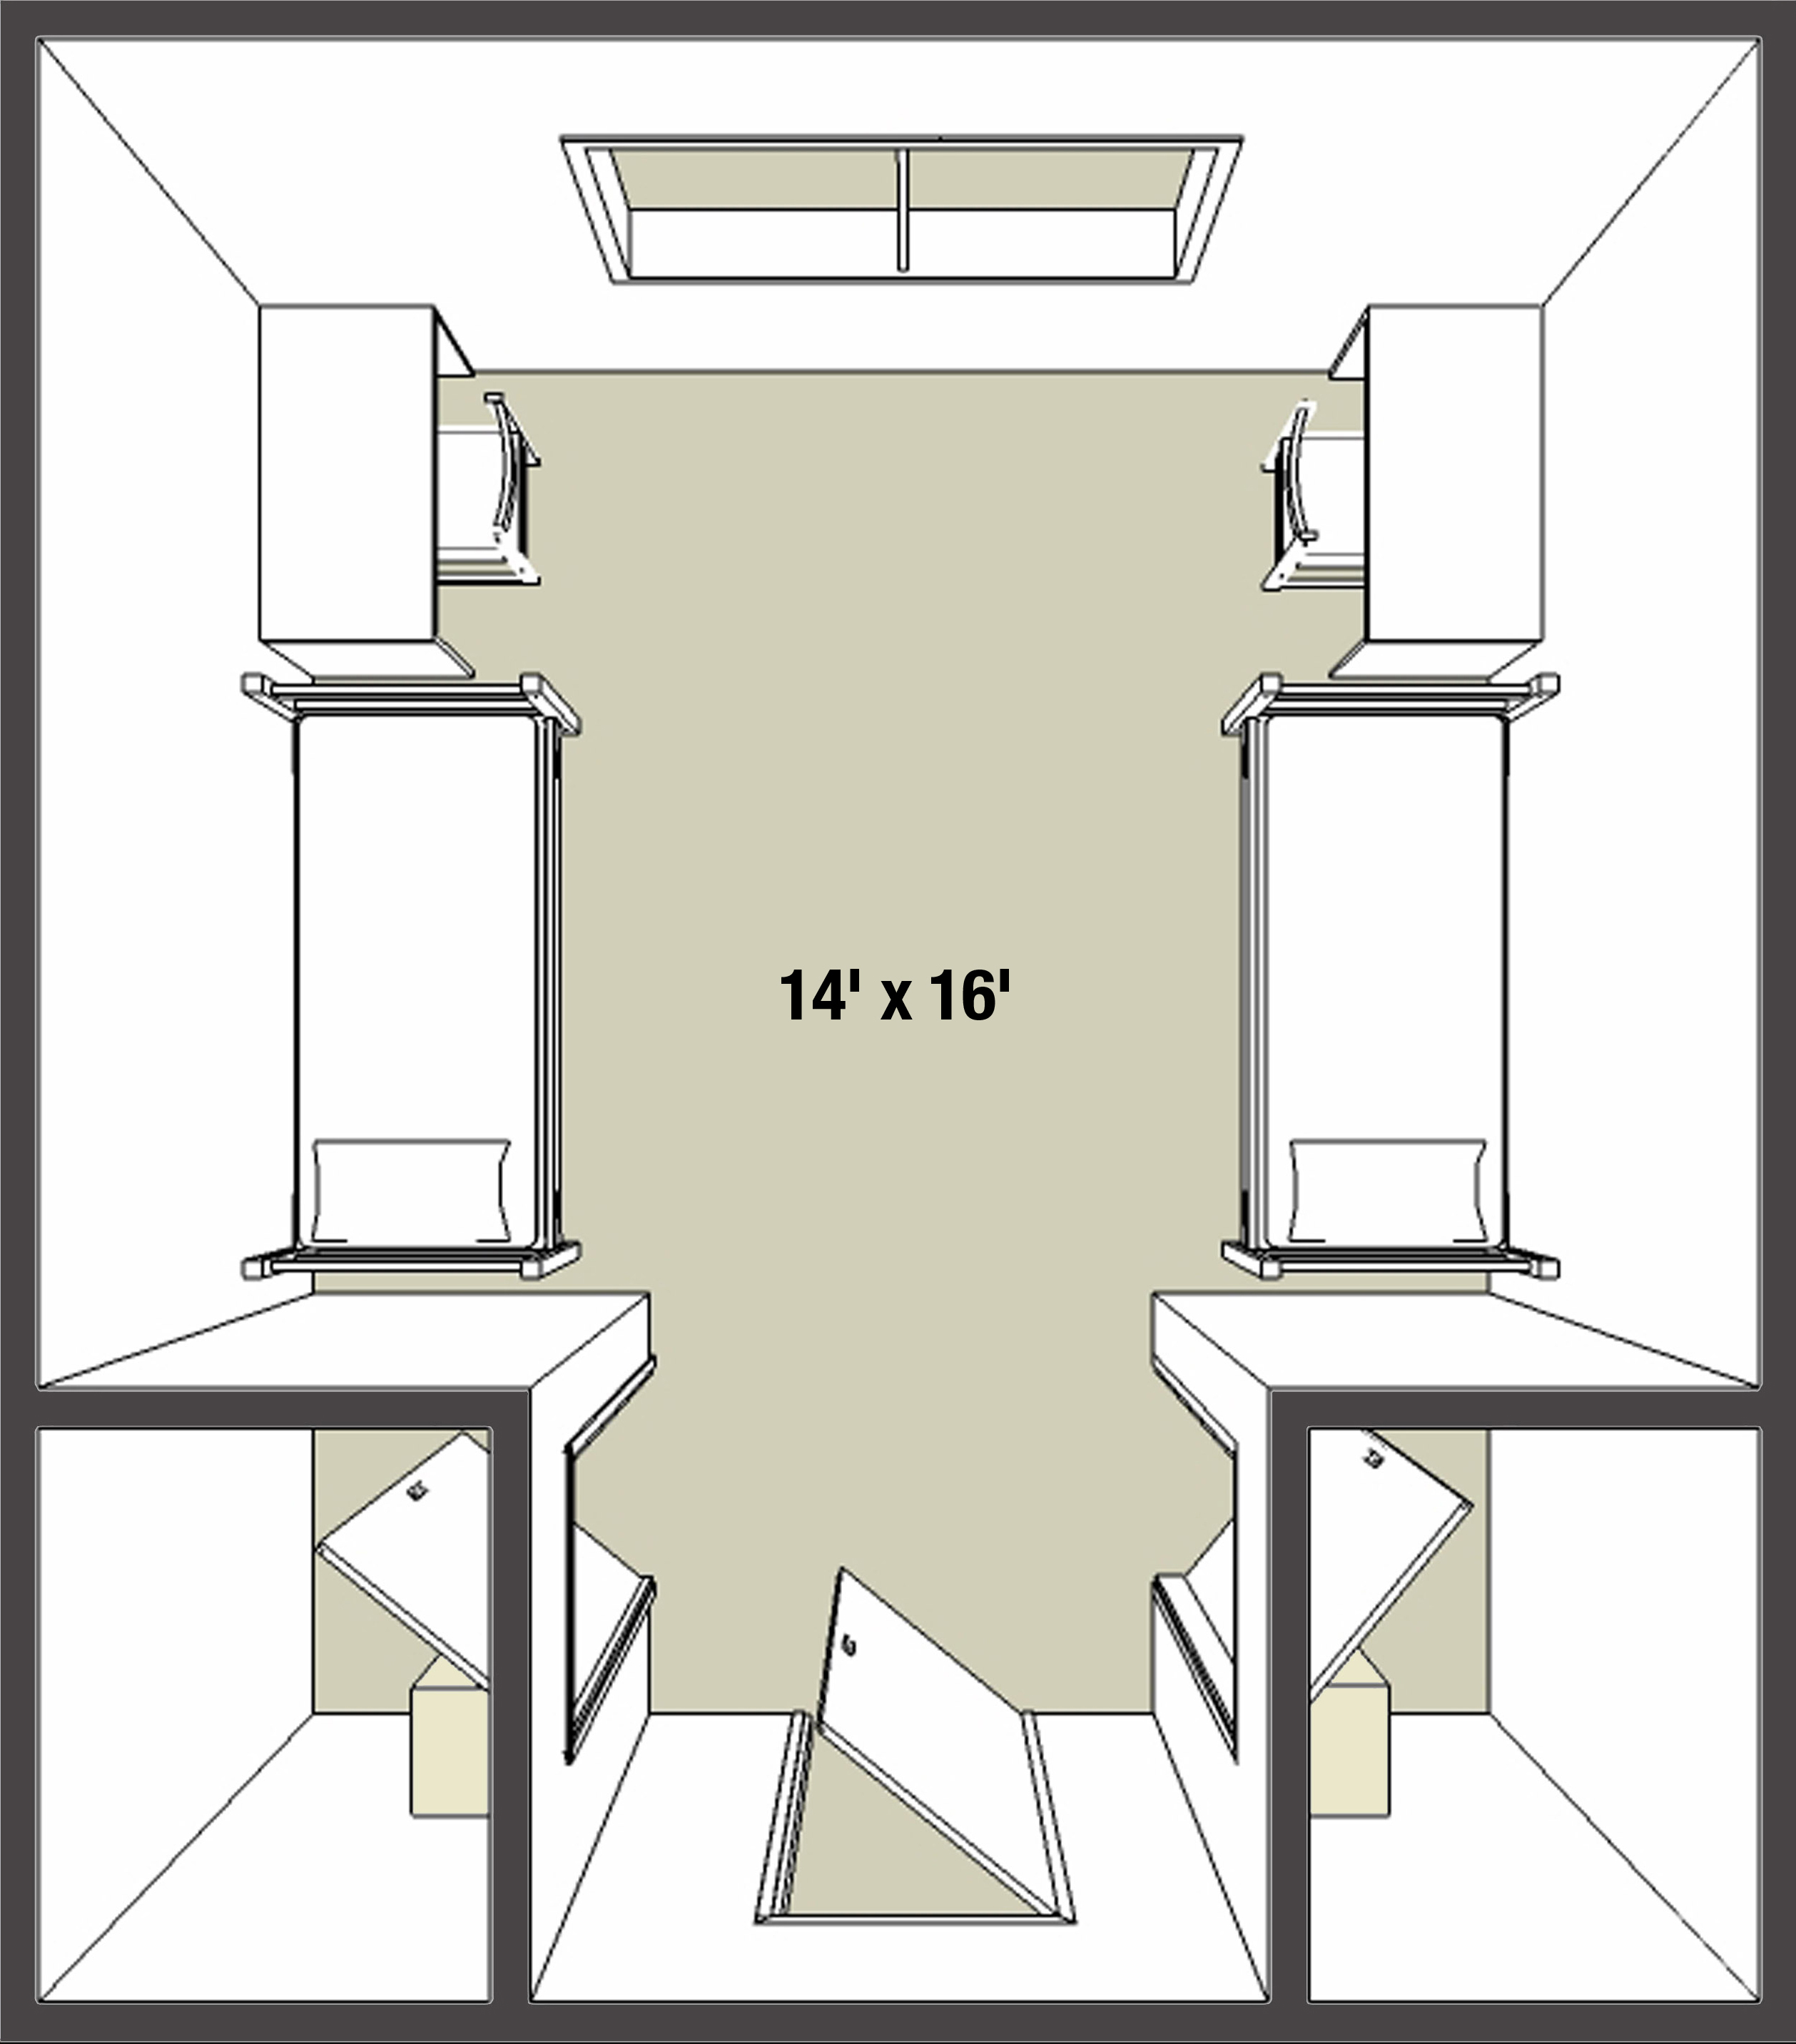 Double dorm room layouts - Take A Look At A Typical Room Layout For A Double Occupancy Room